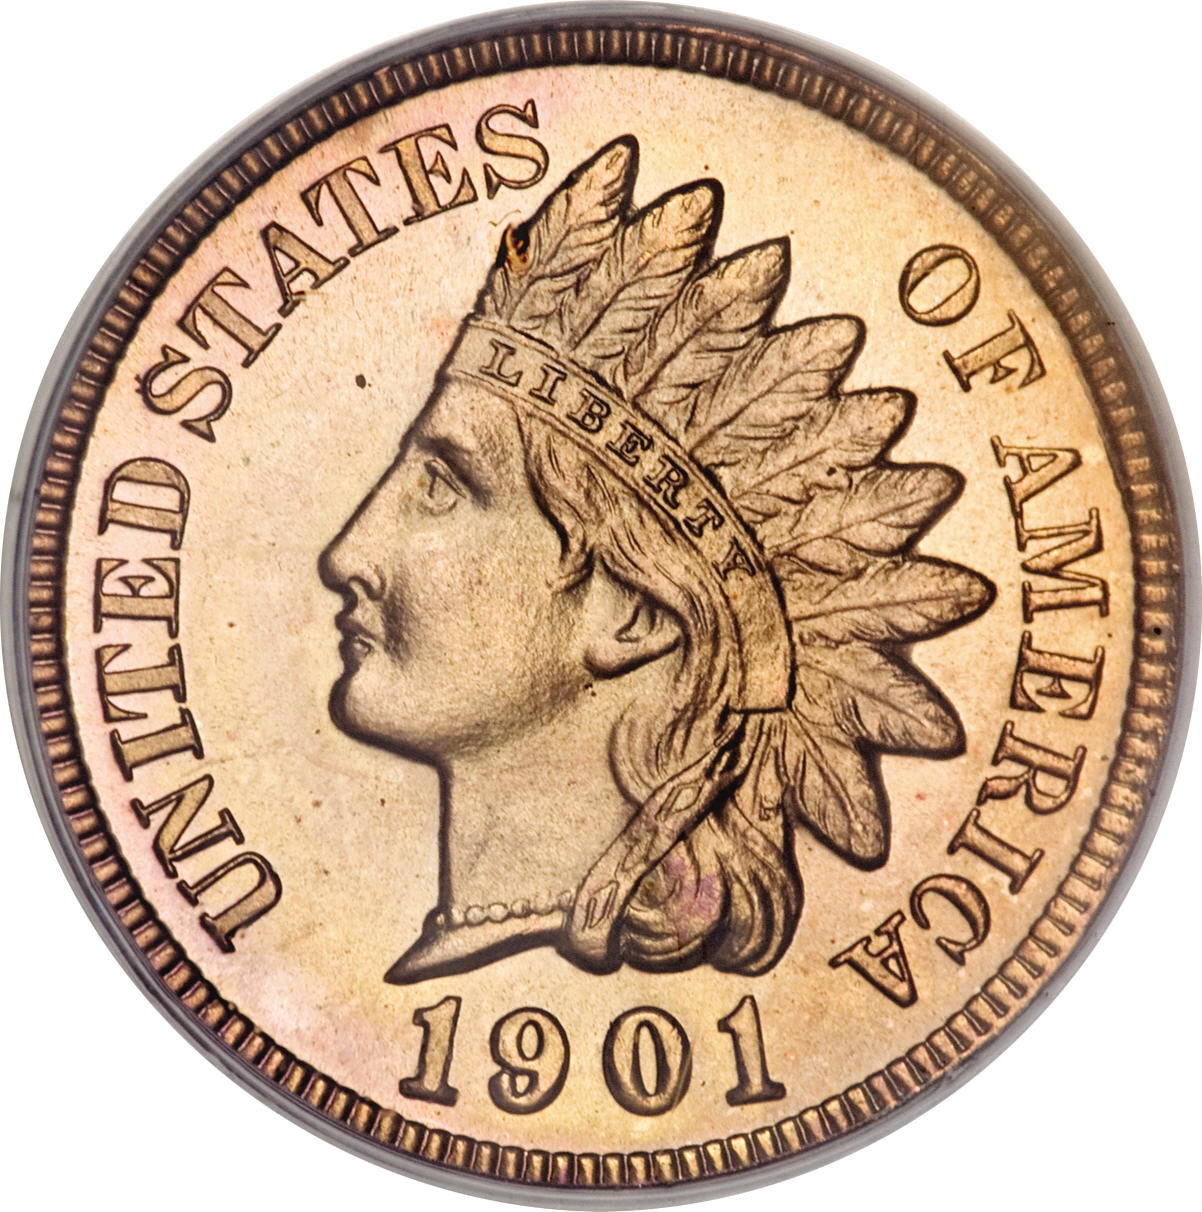 Browse our inventory of Indian Head cents.